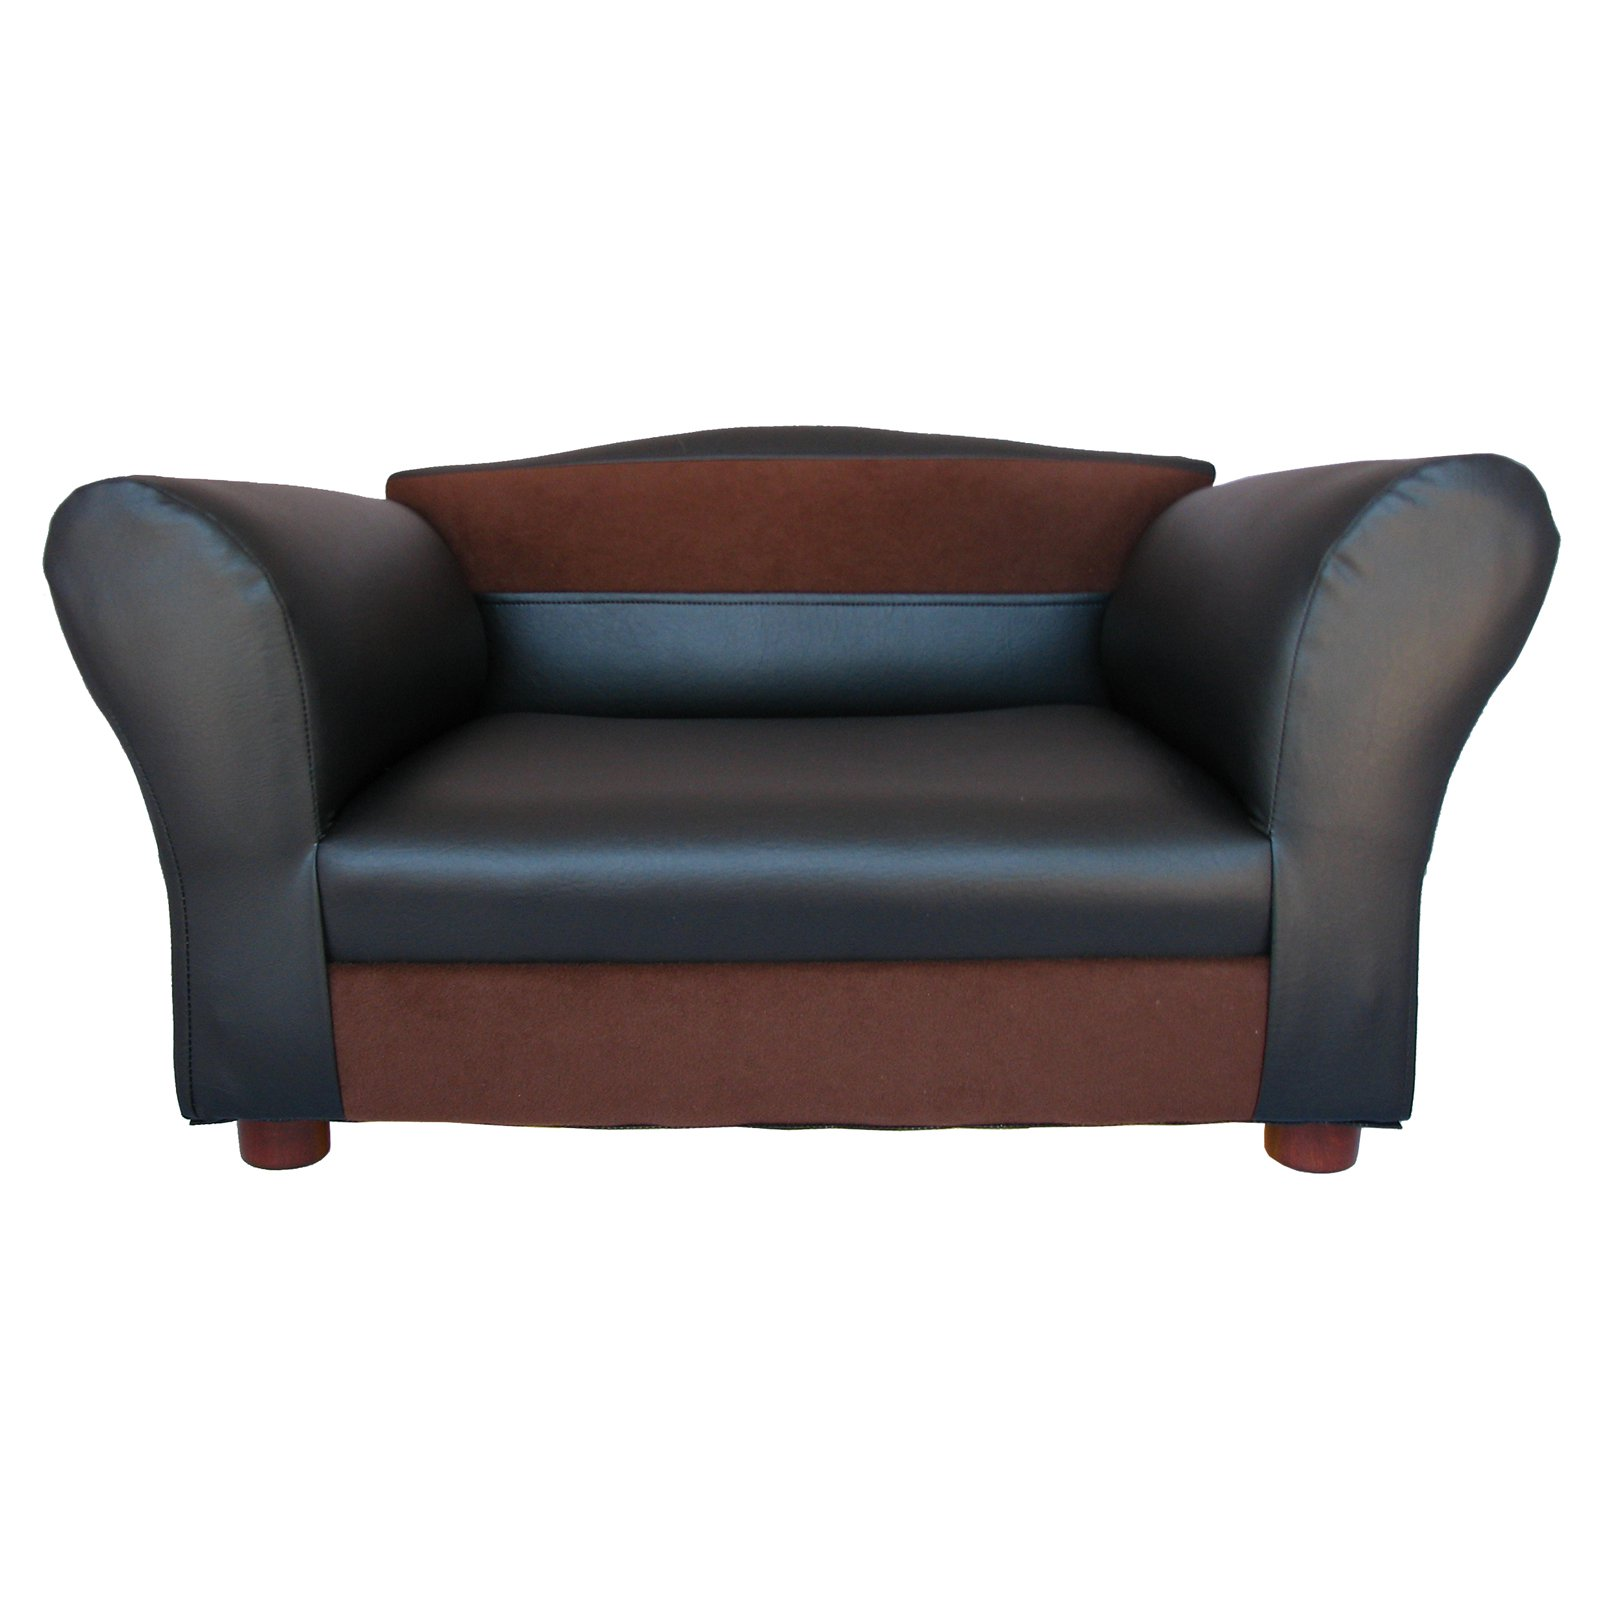 Mini Sofa Mini Sofa College Mini Futon Dorm Sized Sofa Furniture